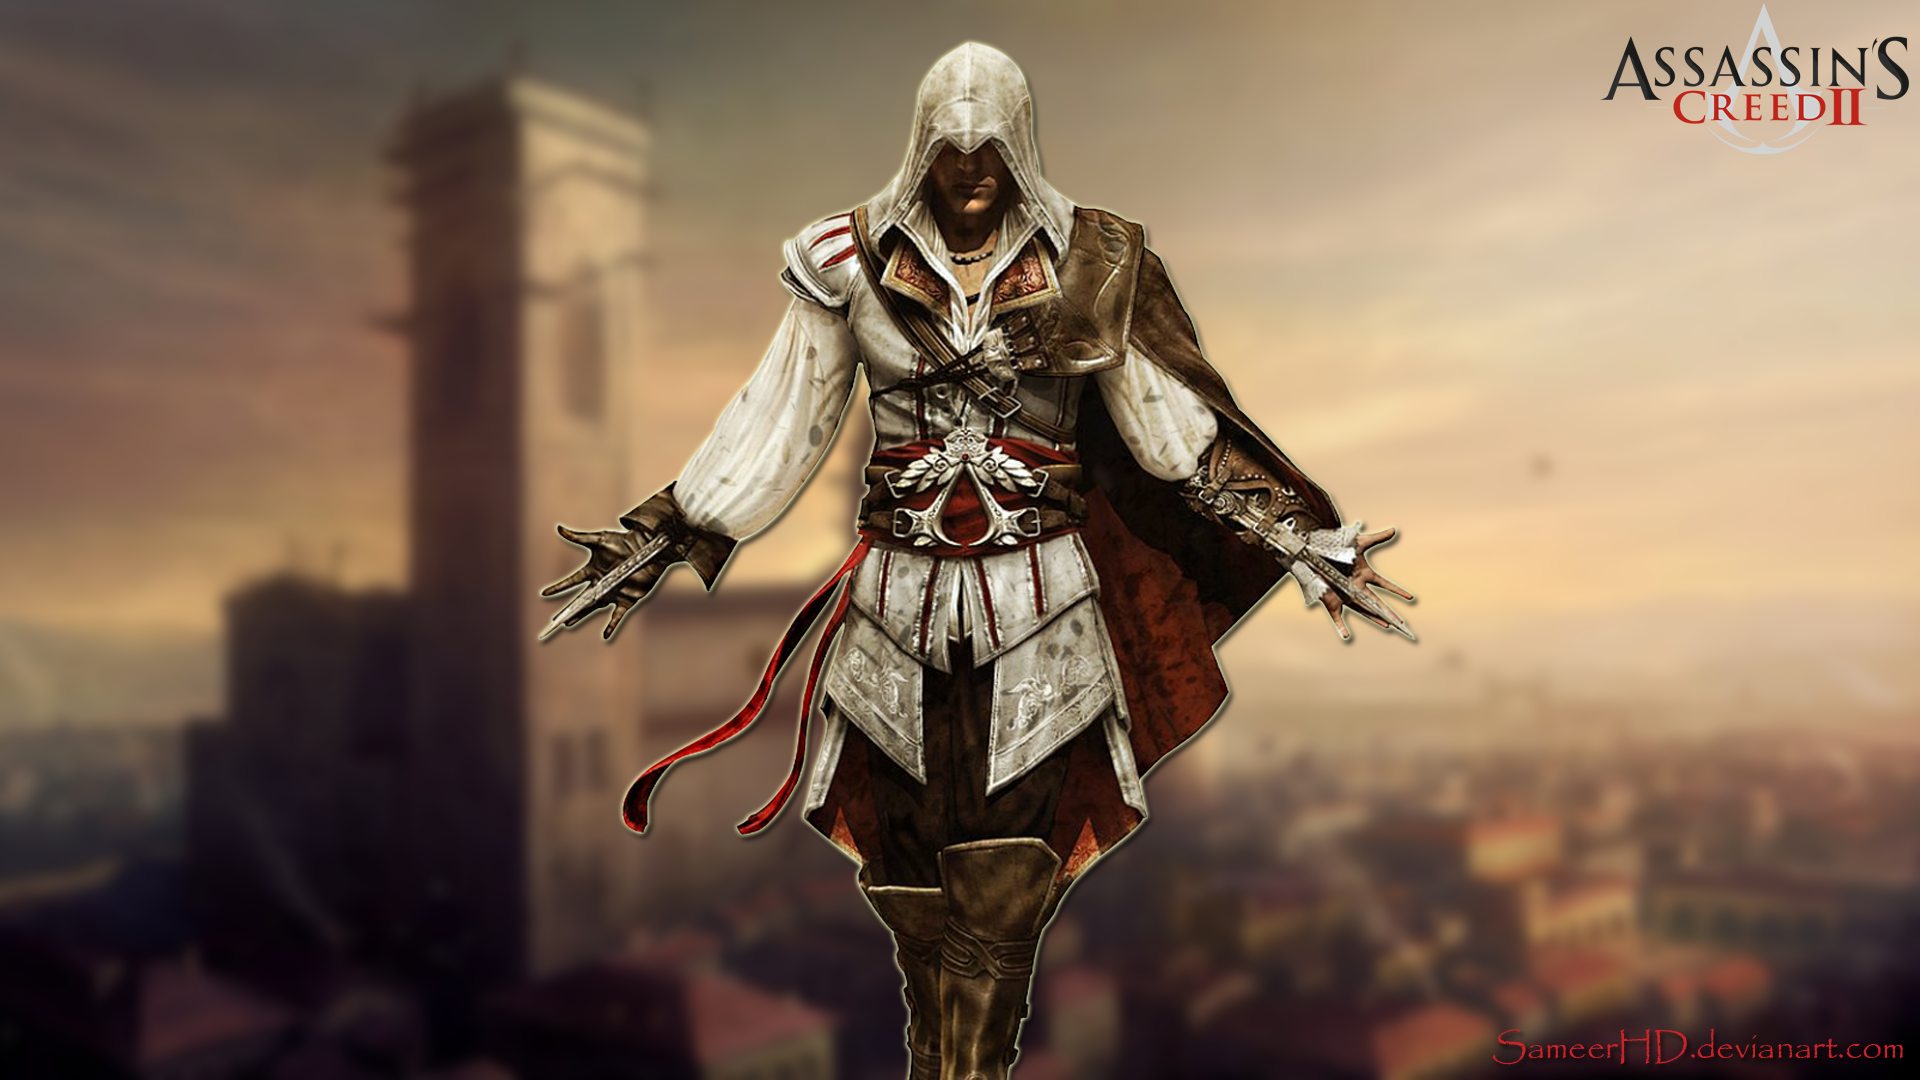 ezio assassins creed ii - photo #21